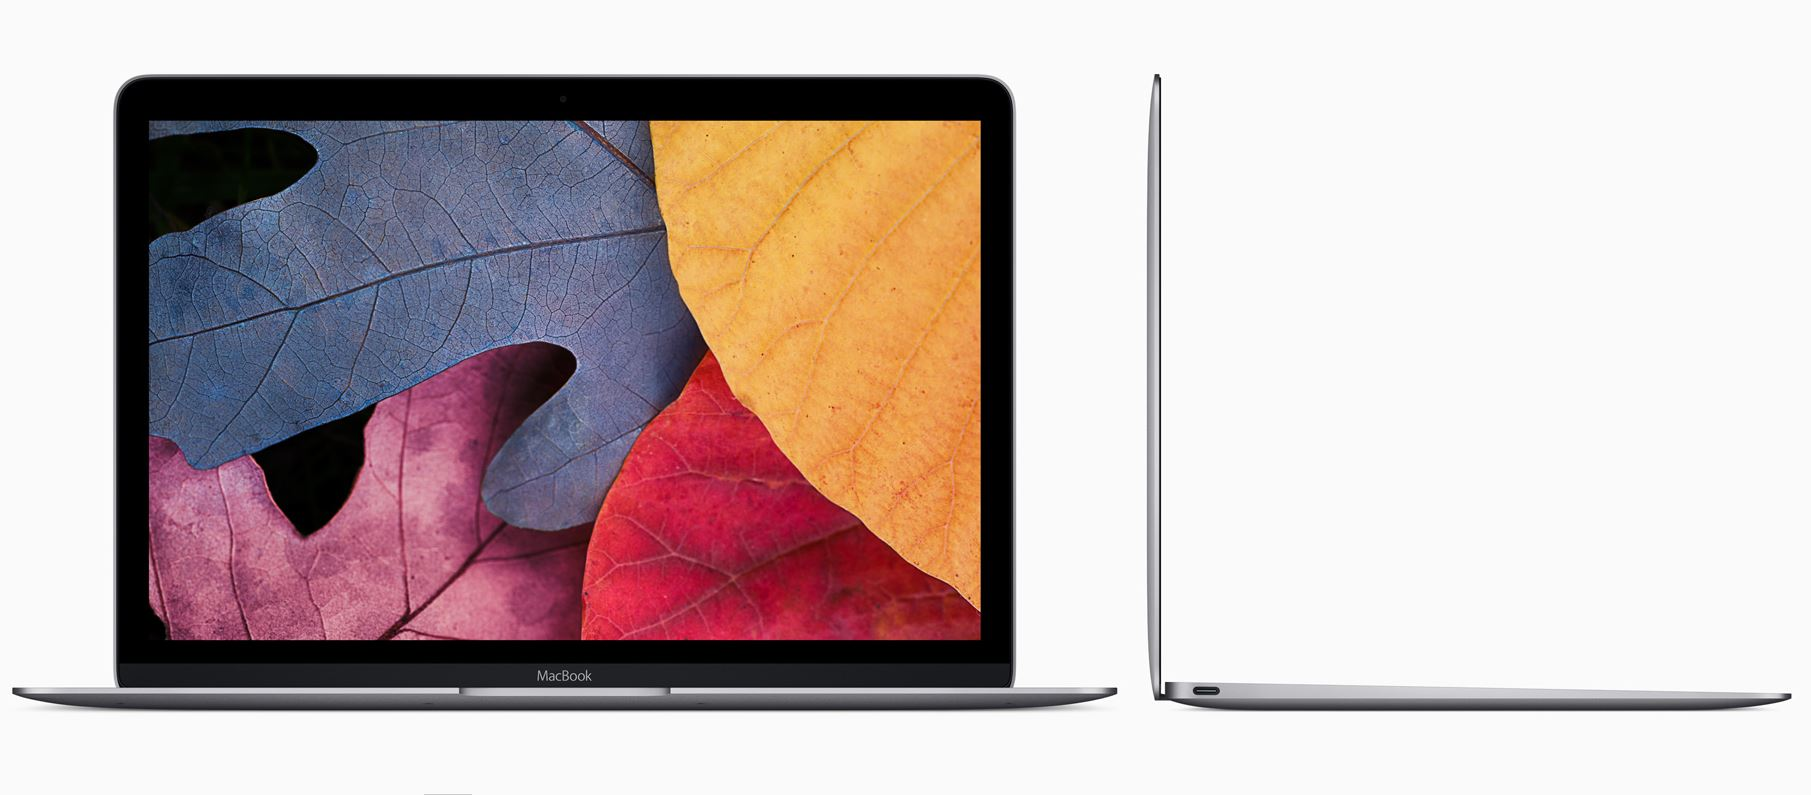 Apple MacBook 12-inch apple macbook 12-inch Apple MacBook 12-inch Review (2016) e62eaaf4eba0e46ec5a2225fa8a691ec